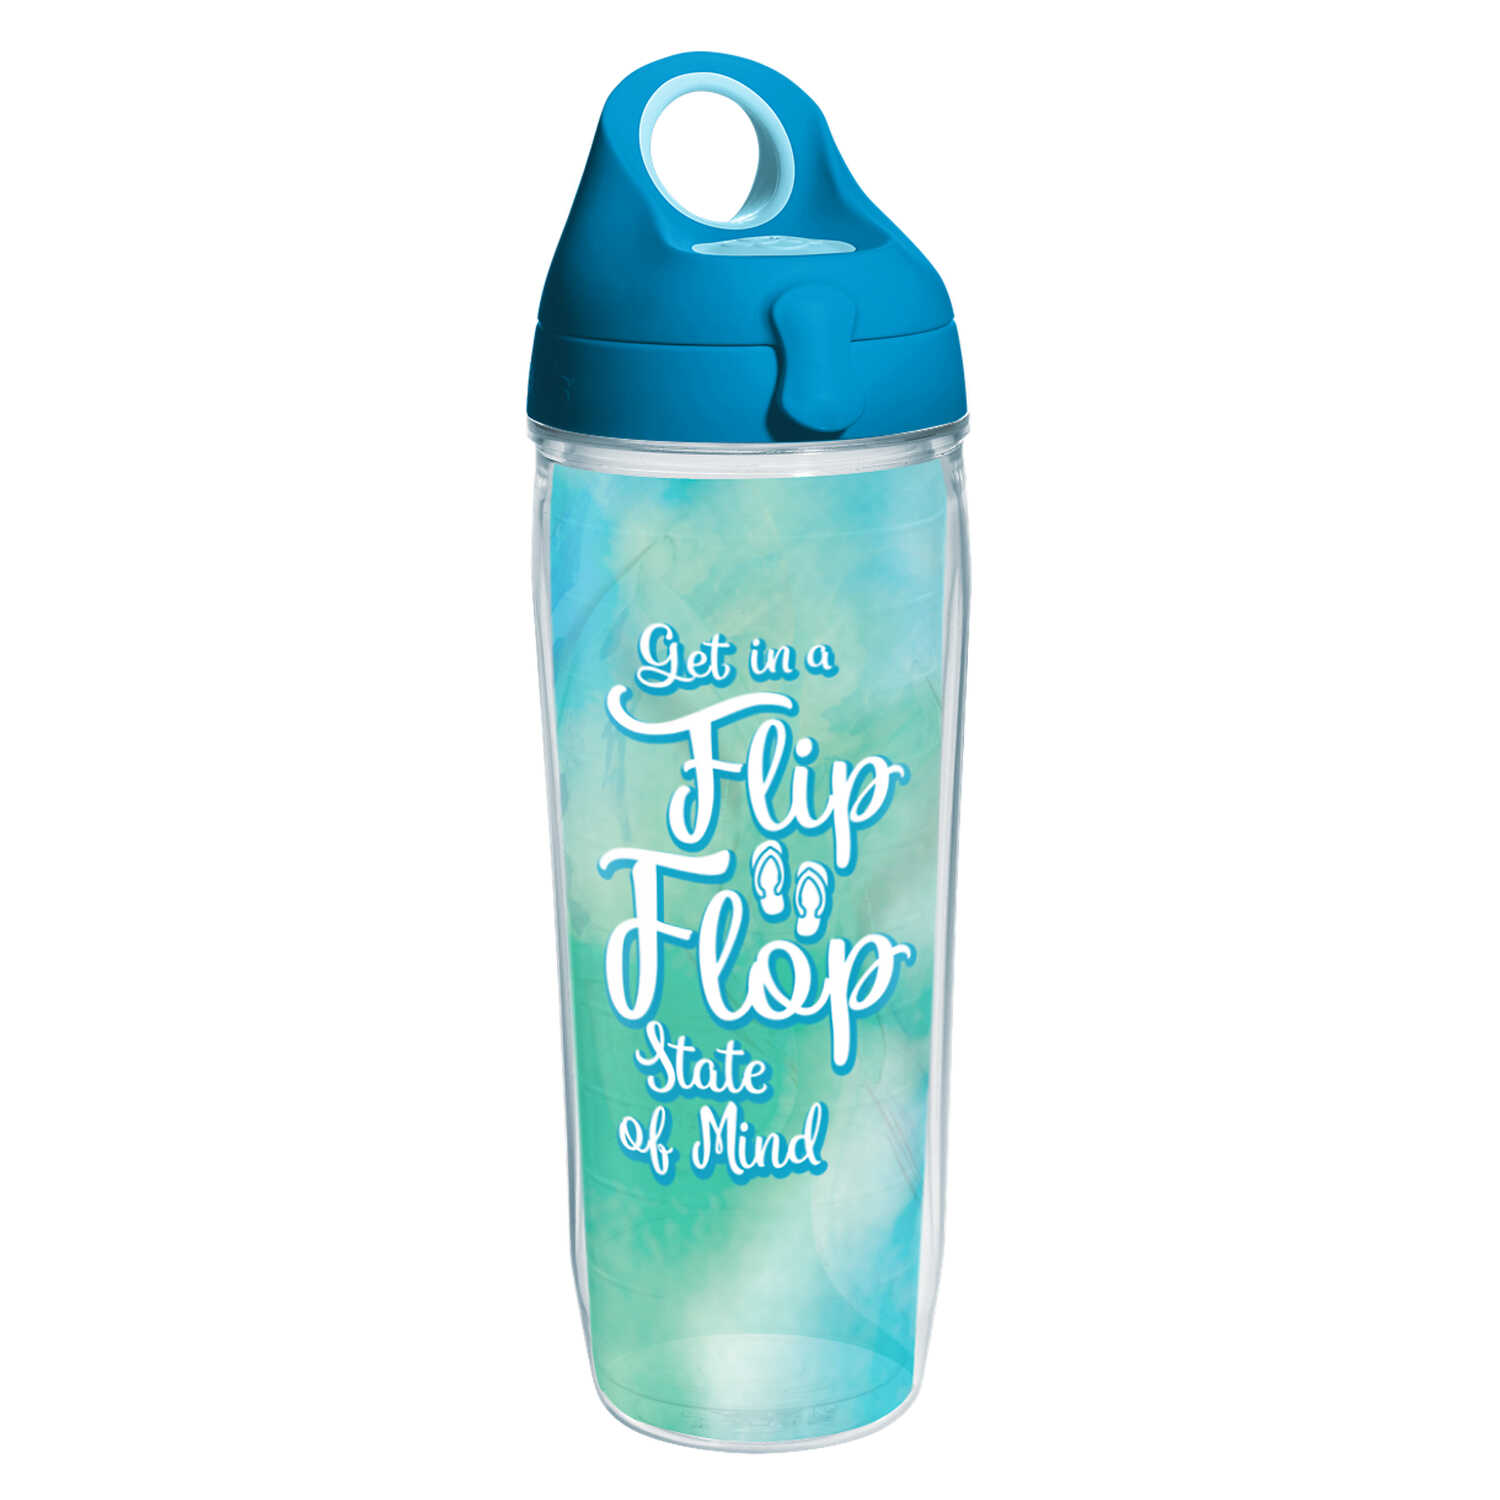 Tervis  Clear  Tritan  Flip Flop State Of Mind  Water Bottle  BPA Free 24 oz.